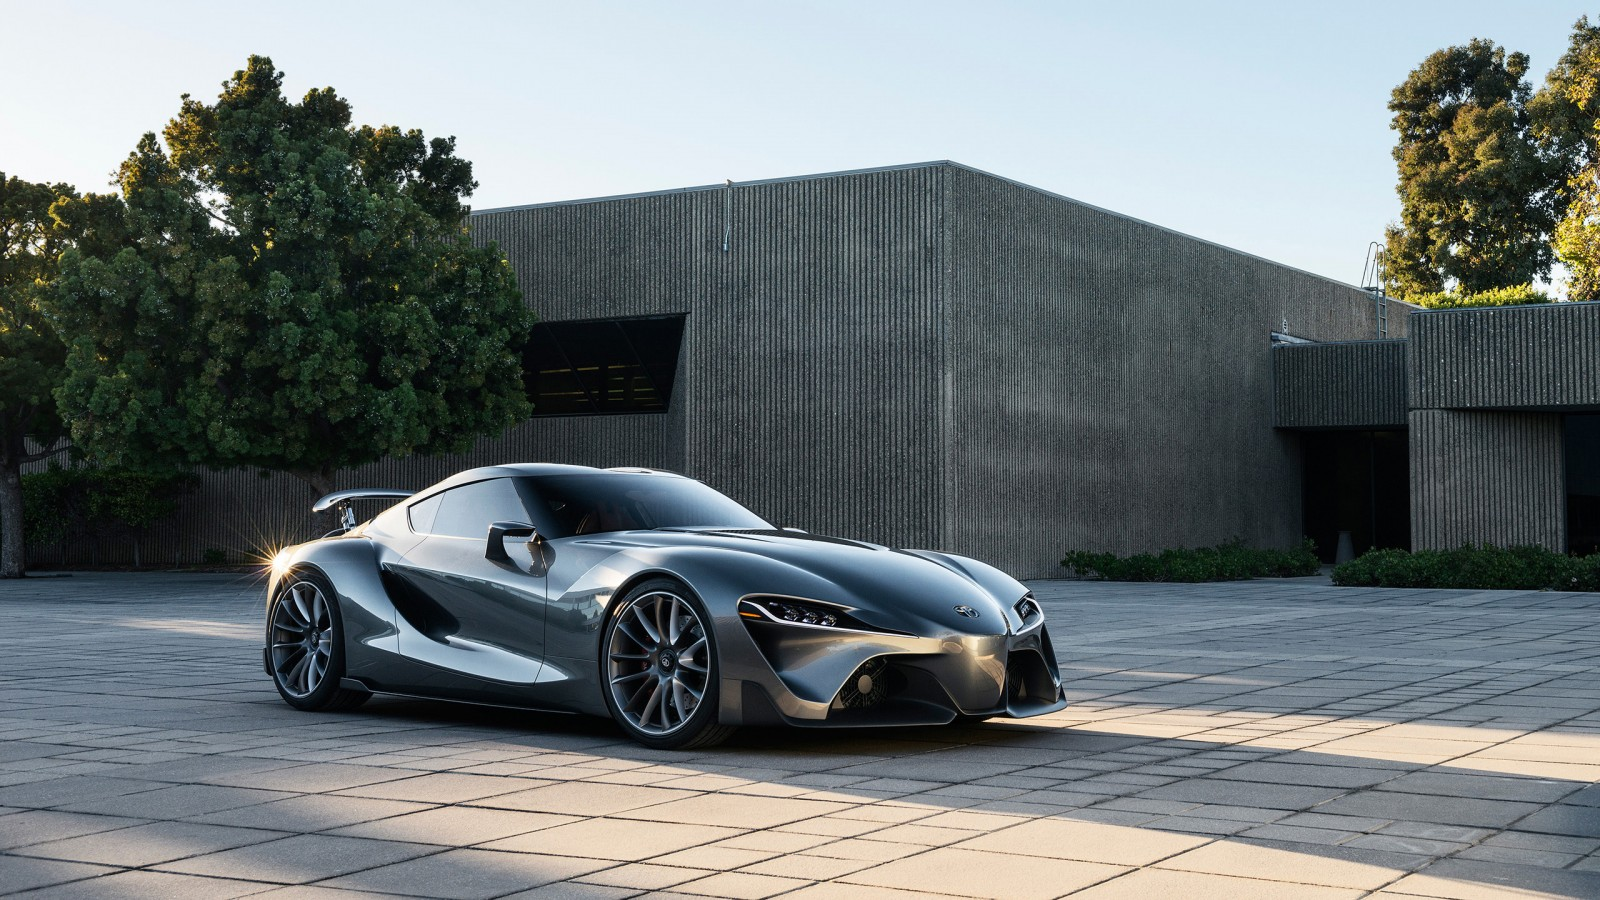 2014 Toyota FT 1 Concept Wallpaper | HD Car Wallpapers